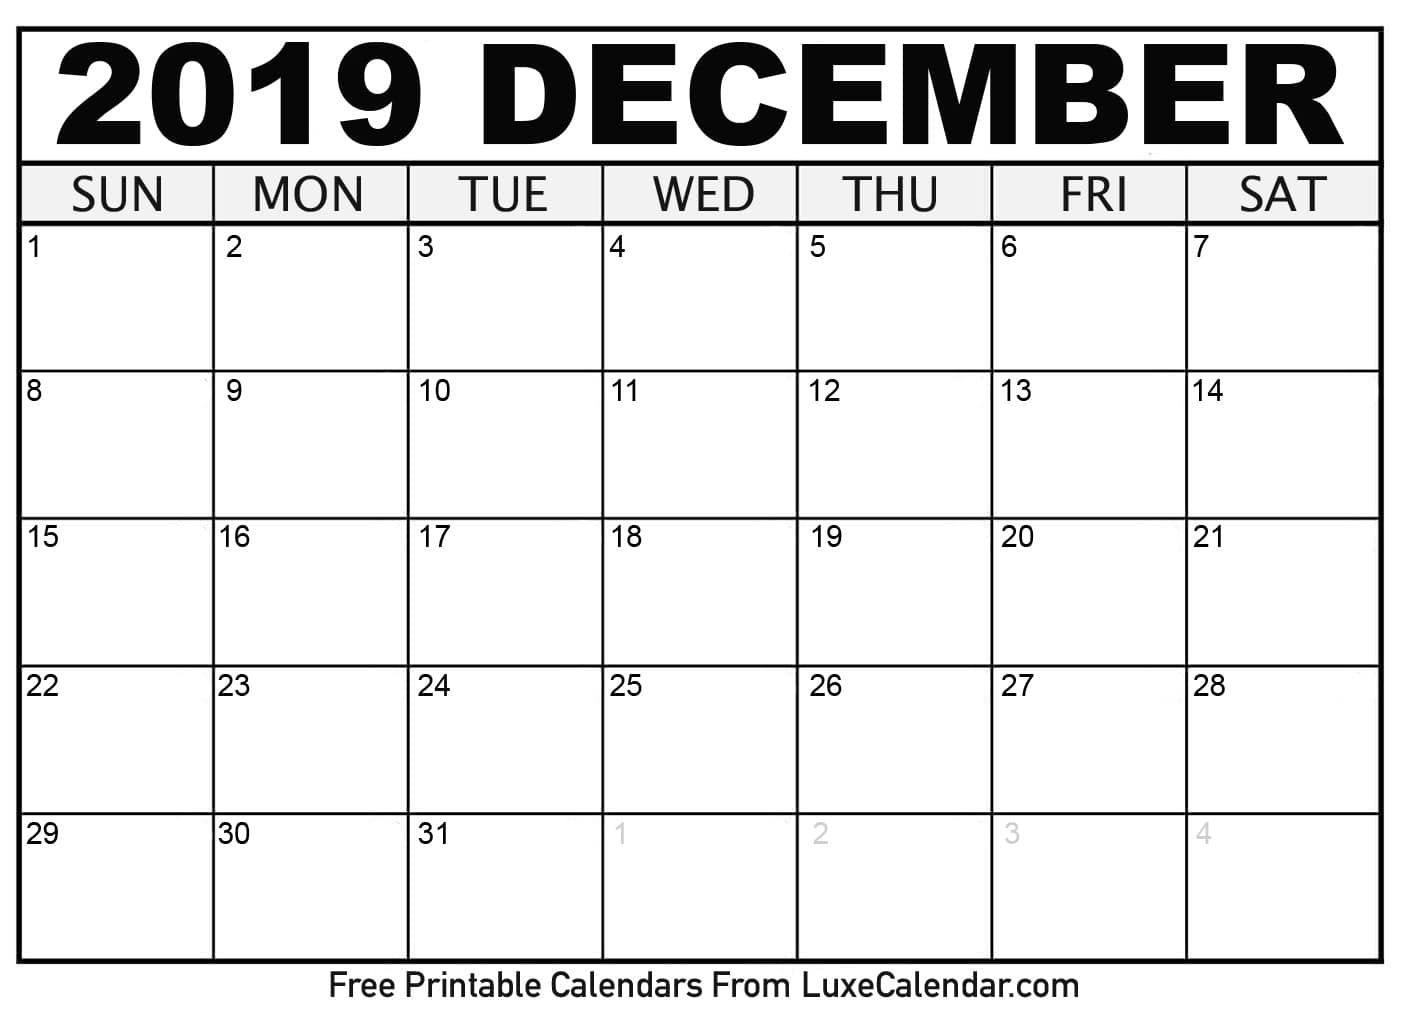 December 2019 Printable Calendars - Luxe Calendar Catch